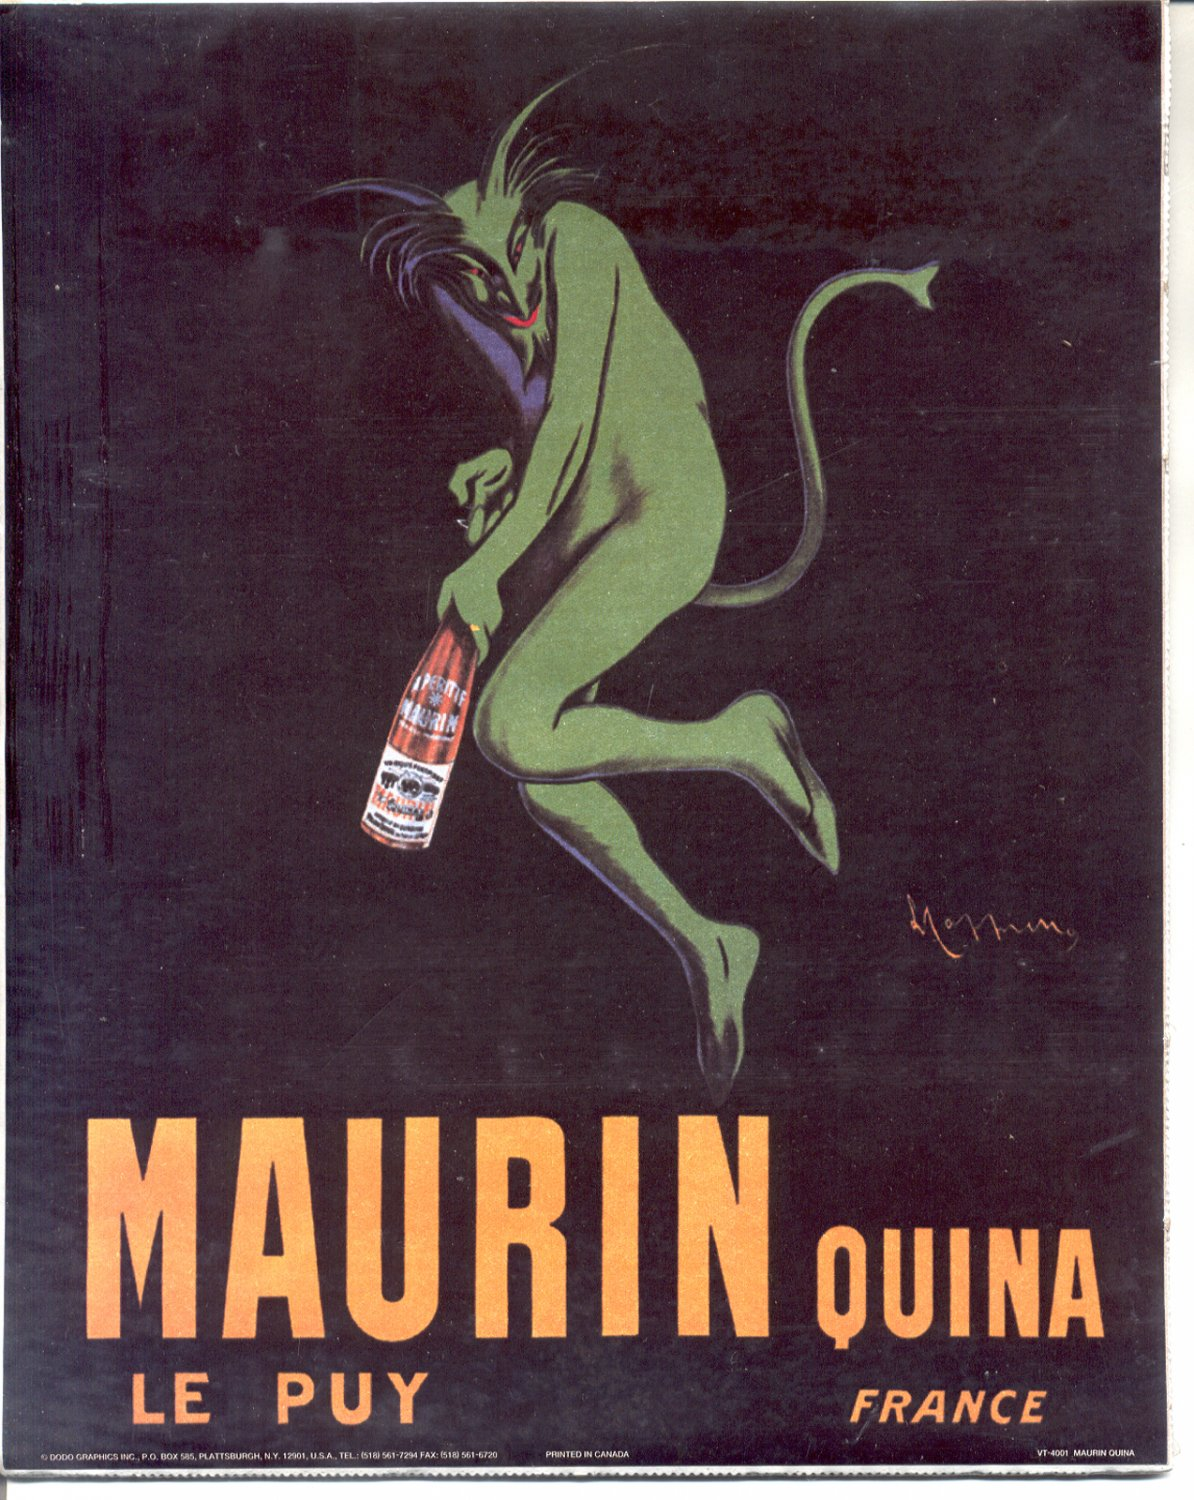 PRINT #20: MAURIN QUINA LE PUY - FRANCE  8 X 10 MINT